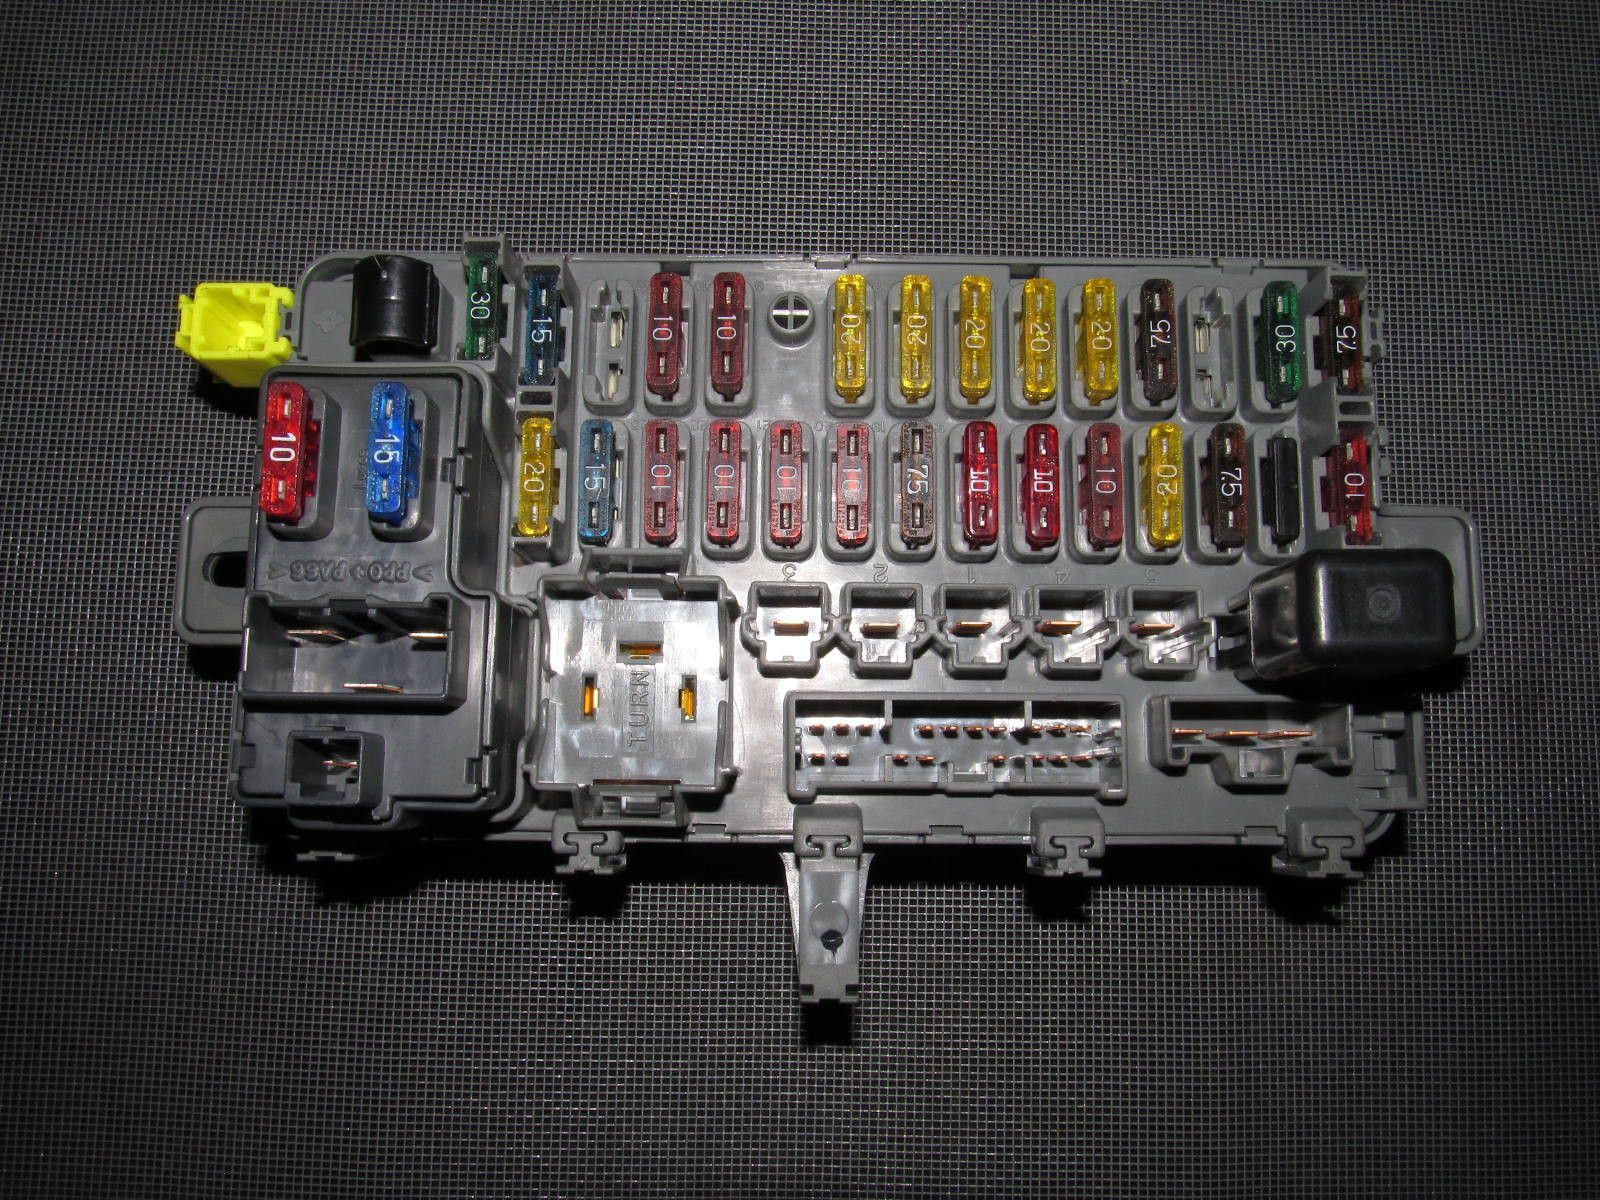 94 01 acura integra oem interior fuse box with integration unit rh  pinterest com fuse box acura integra 1996 fuse box diagram for 1990 acura  integra